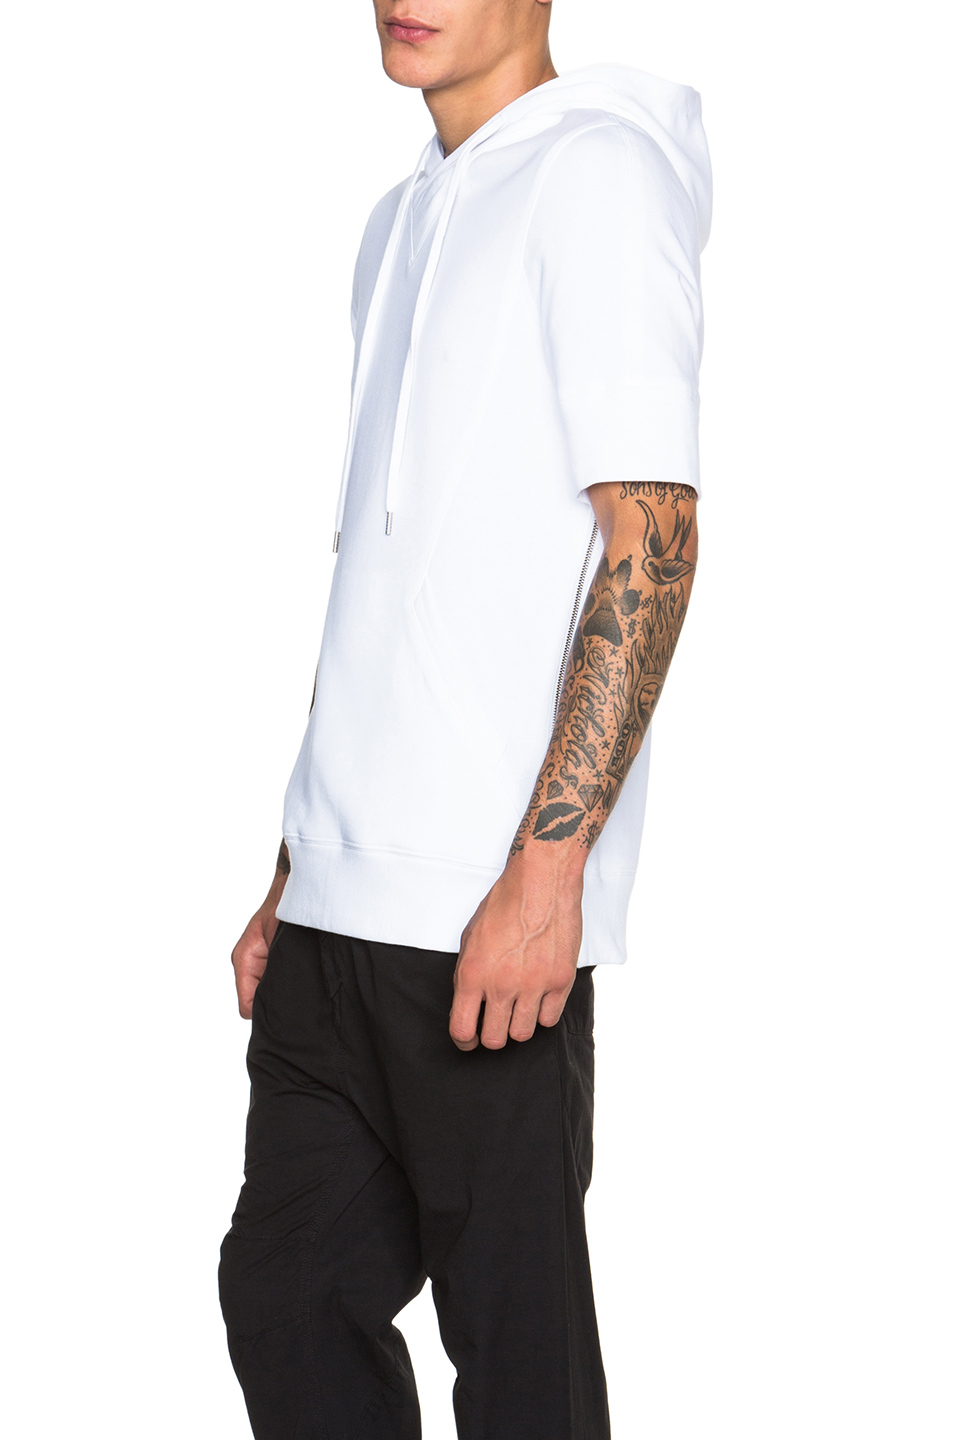 Collection Short Sleeve Hoodies Mens Pictures - Reikian